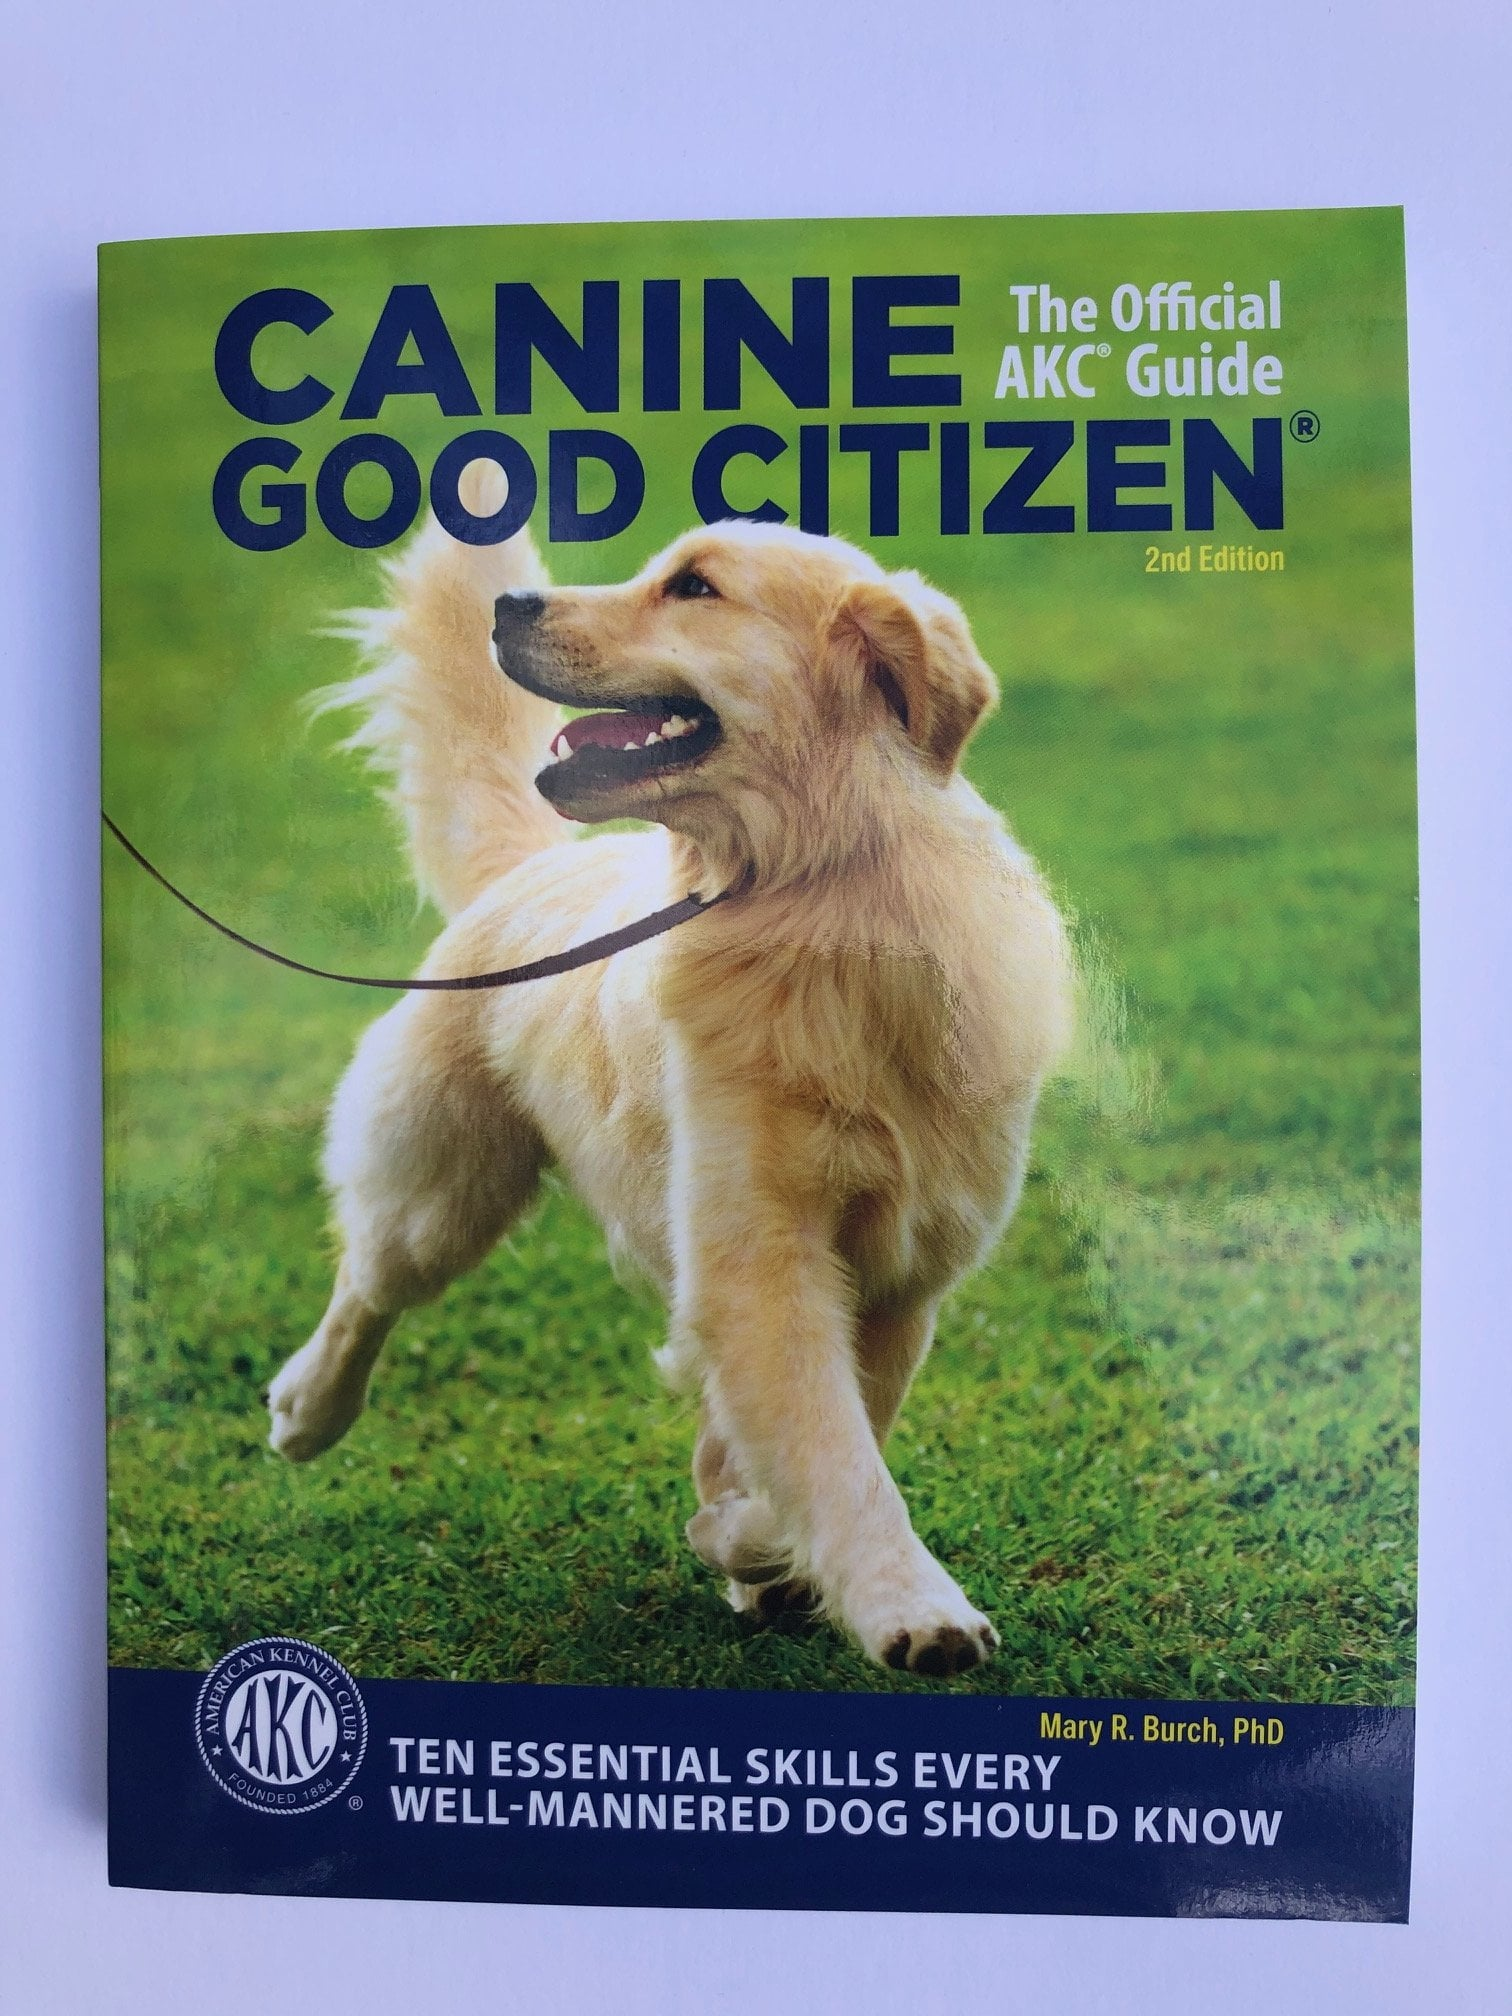 Canine Good Citizen - ISBN 978-159378644-1, Paperback, 2nd Edition image